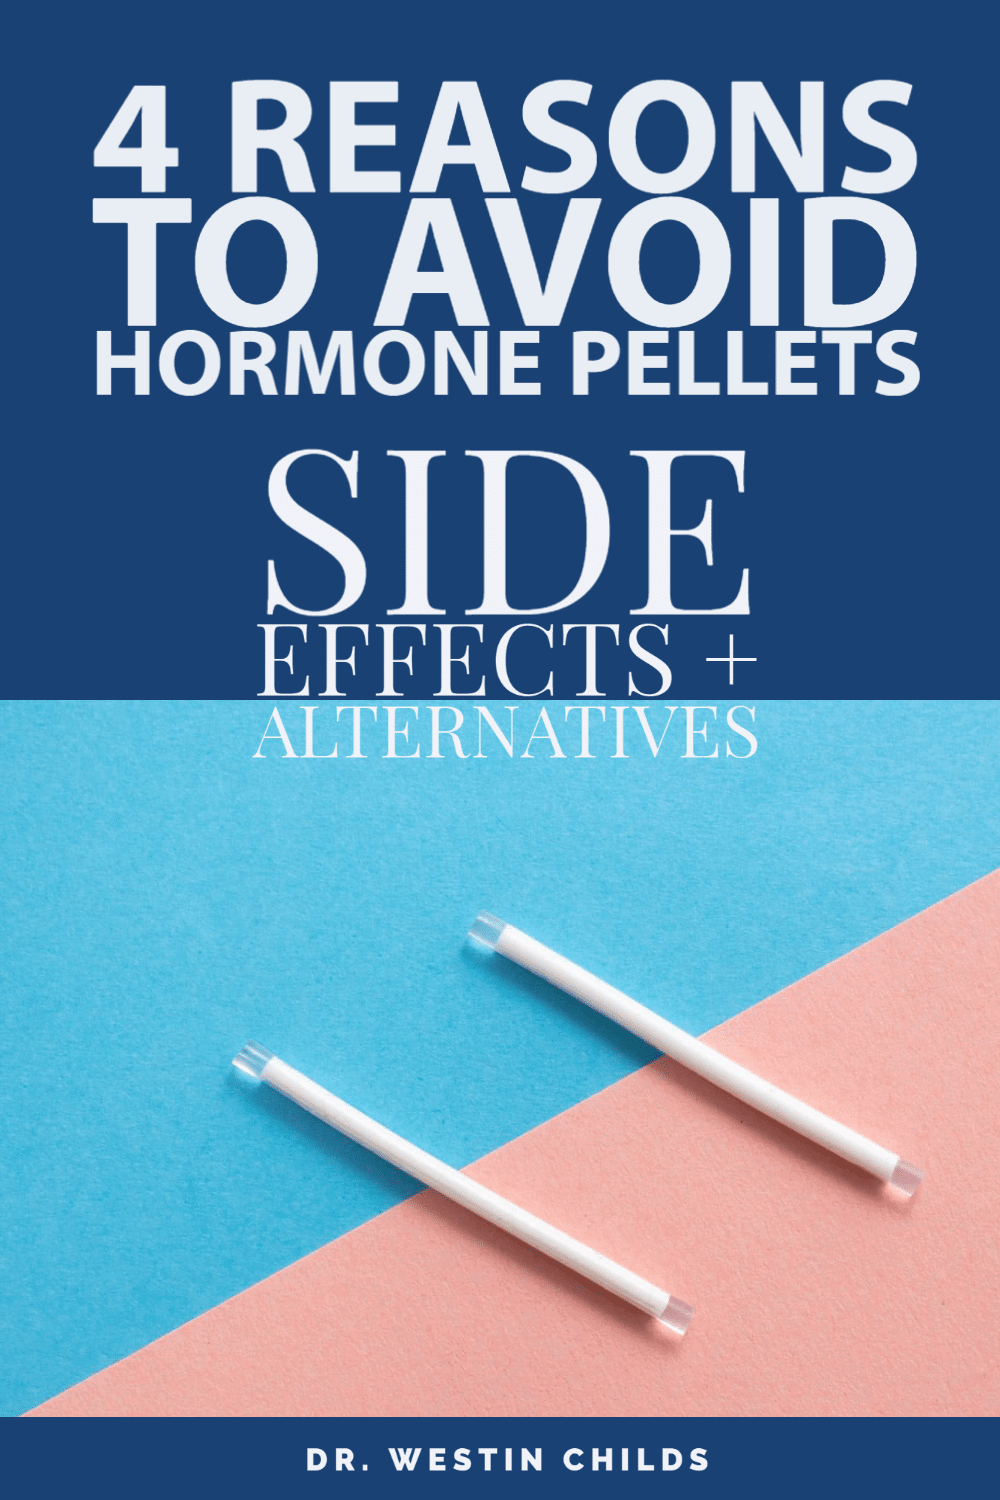 4 reasons to avoid hormone pellets